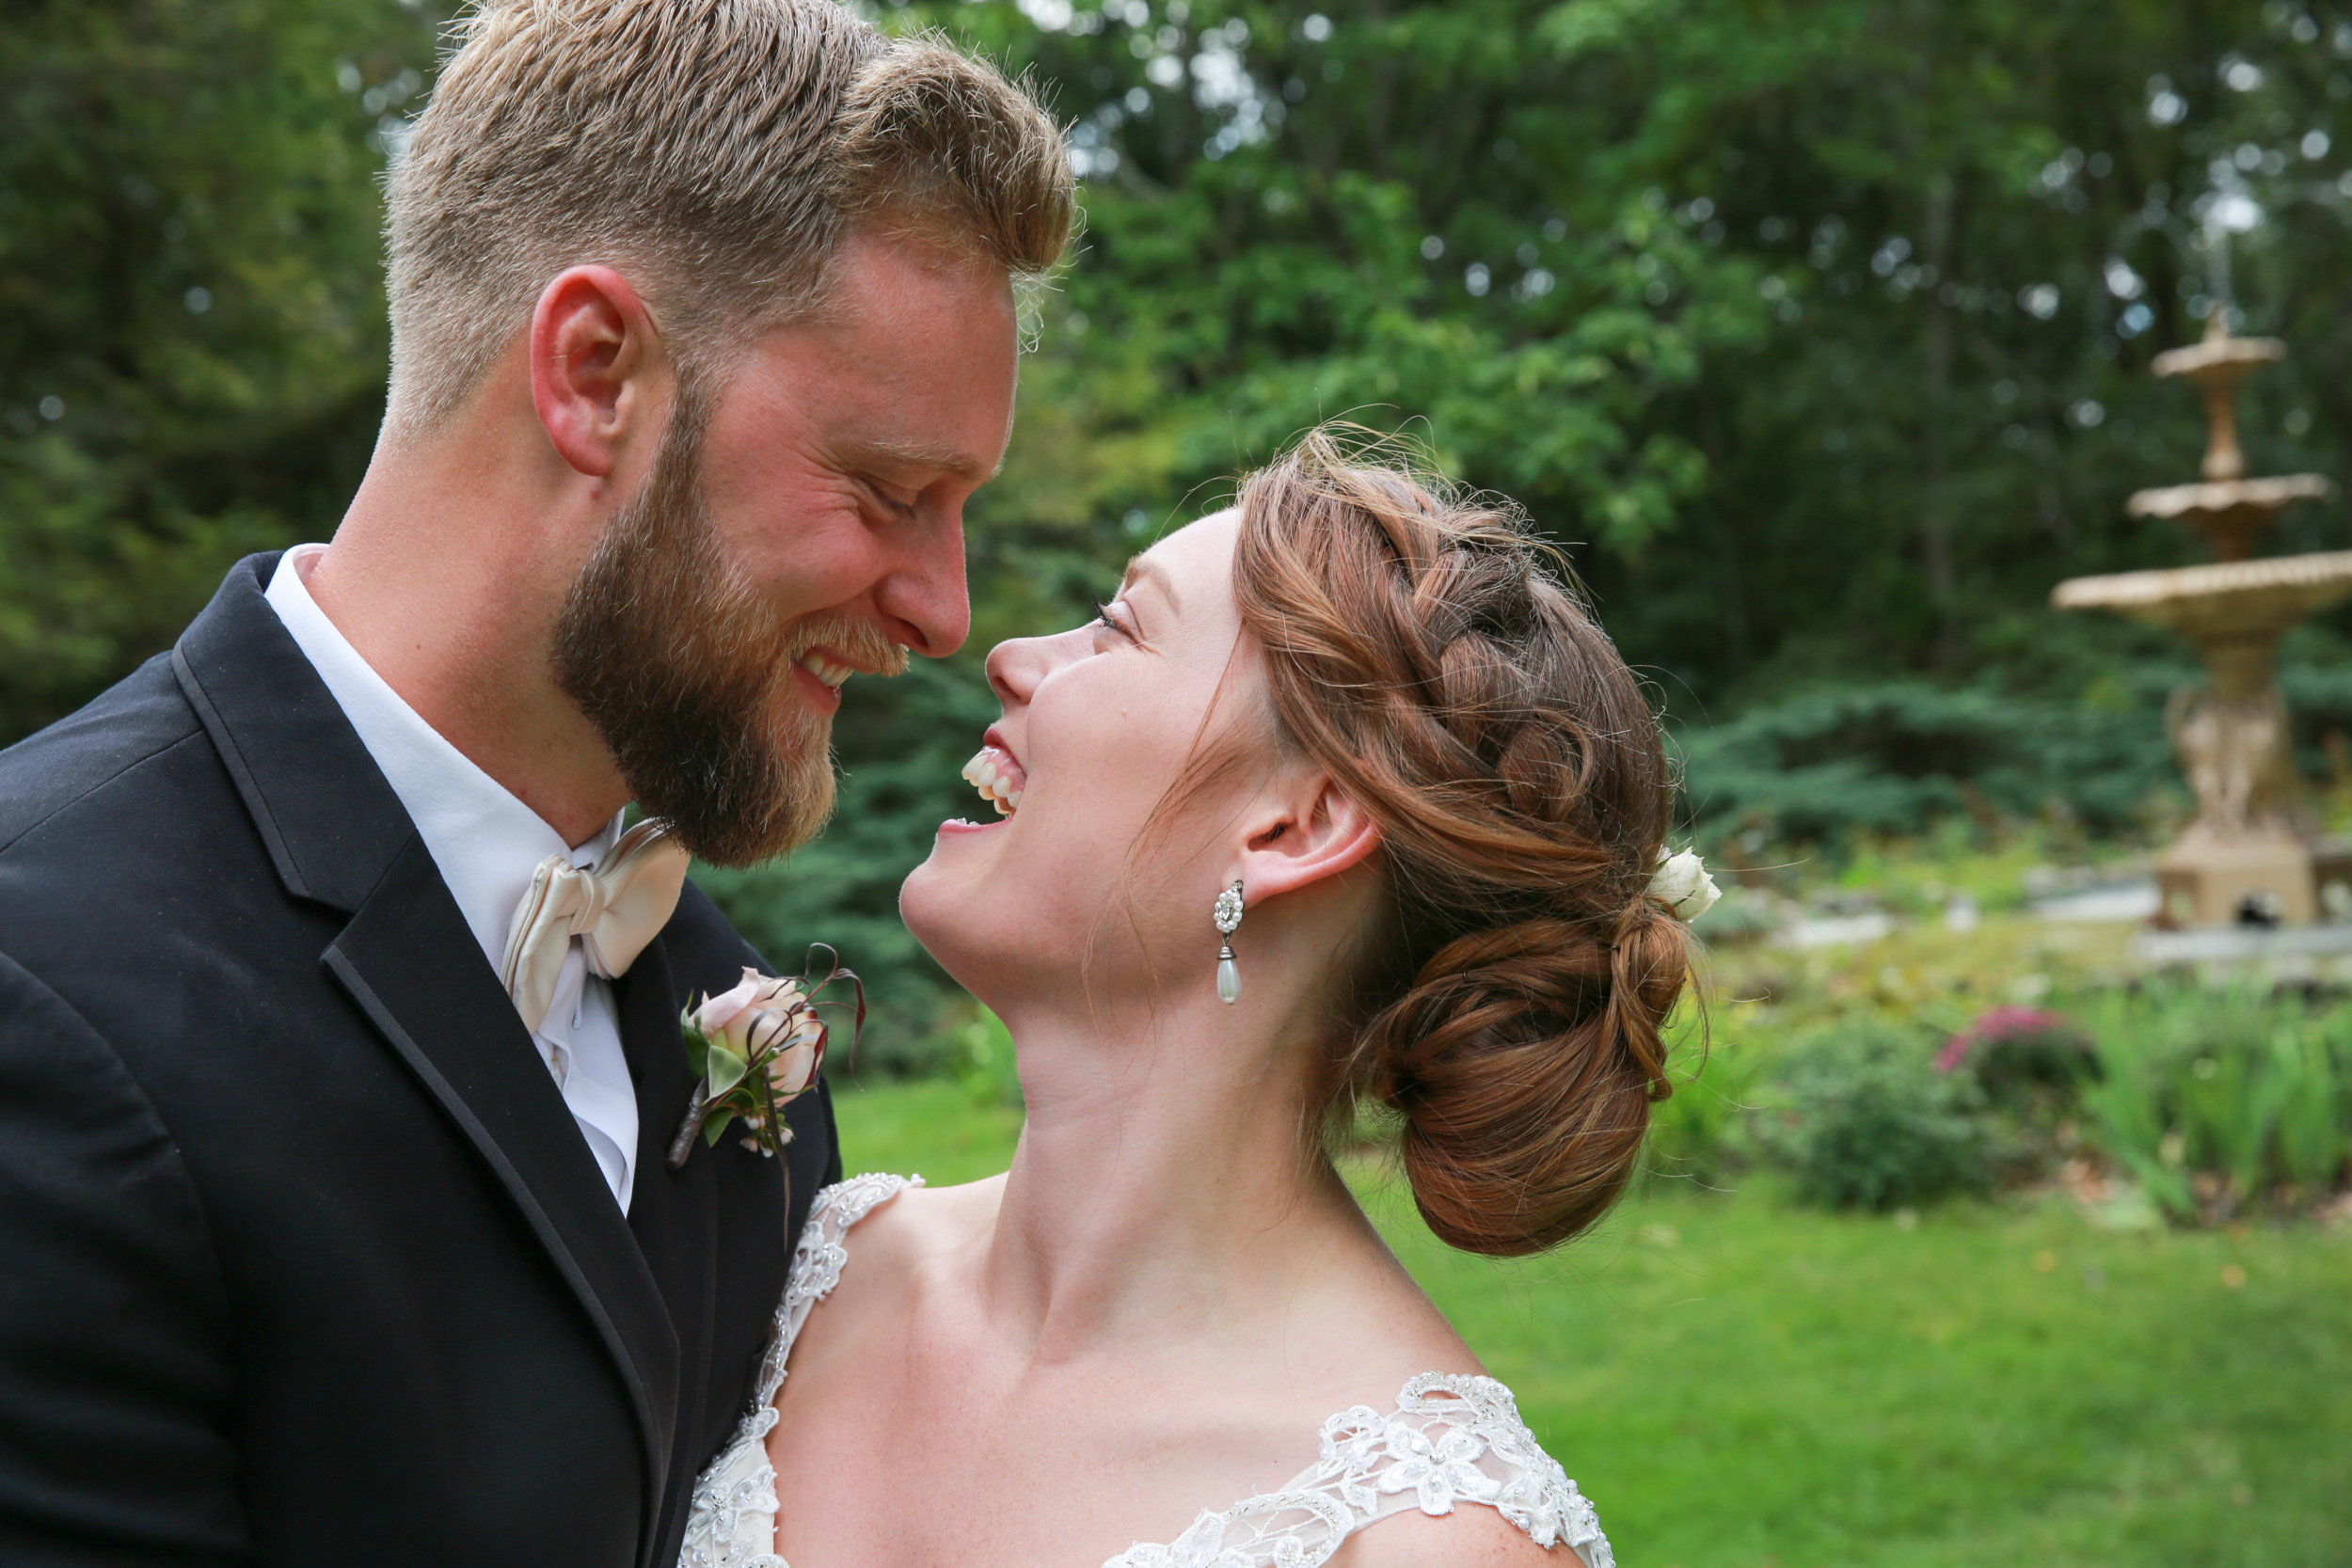 Photographs of a Bride and Groom in Saugerties. Taken by Aperture Photograhy